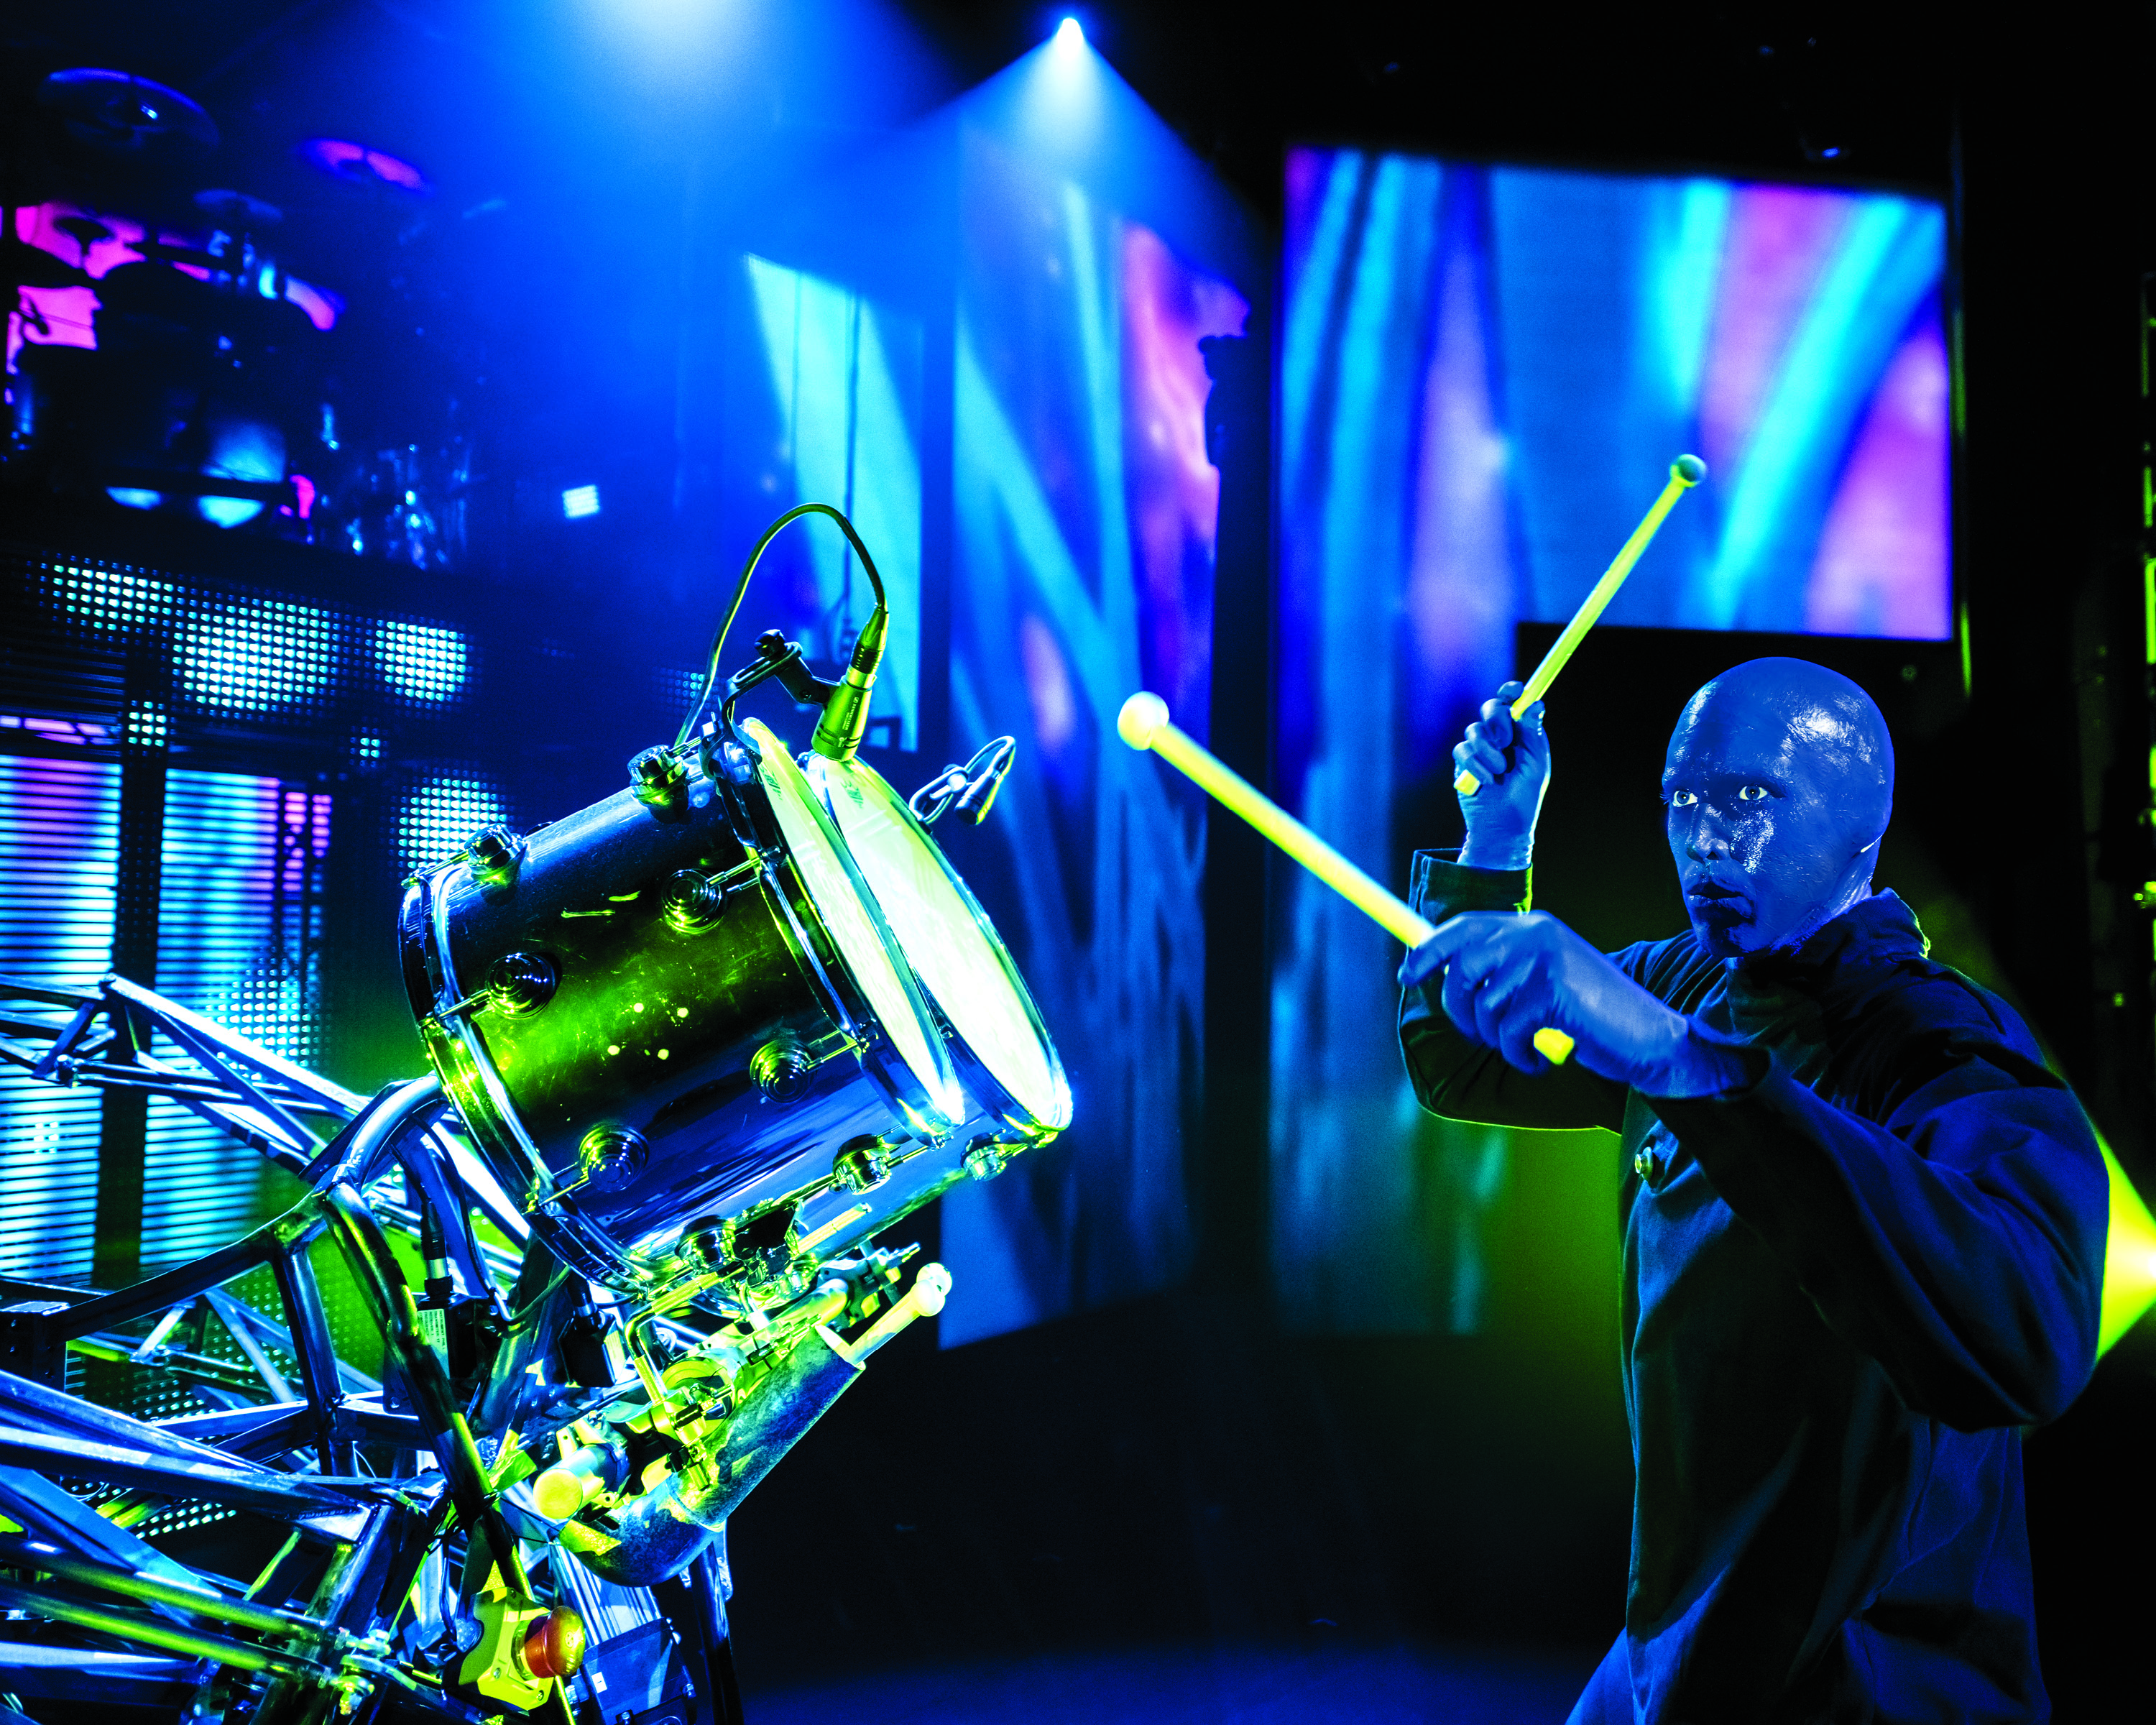 BlueMan_photo_SmallDrum_10x8.jpg.jpg